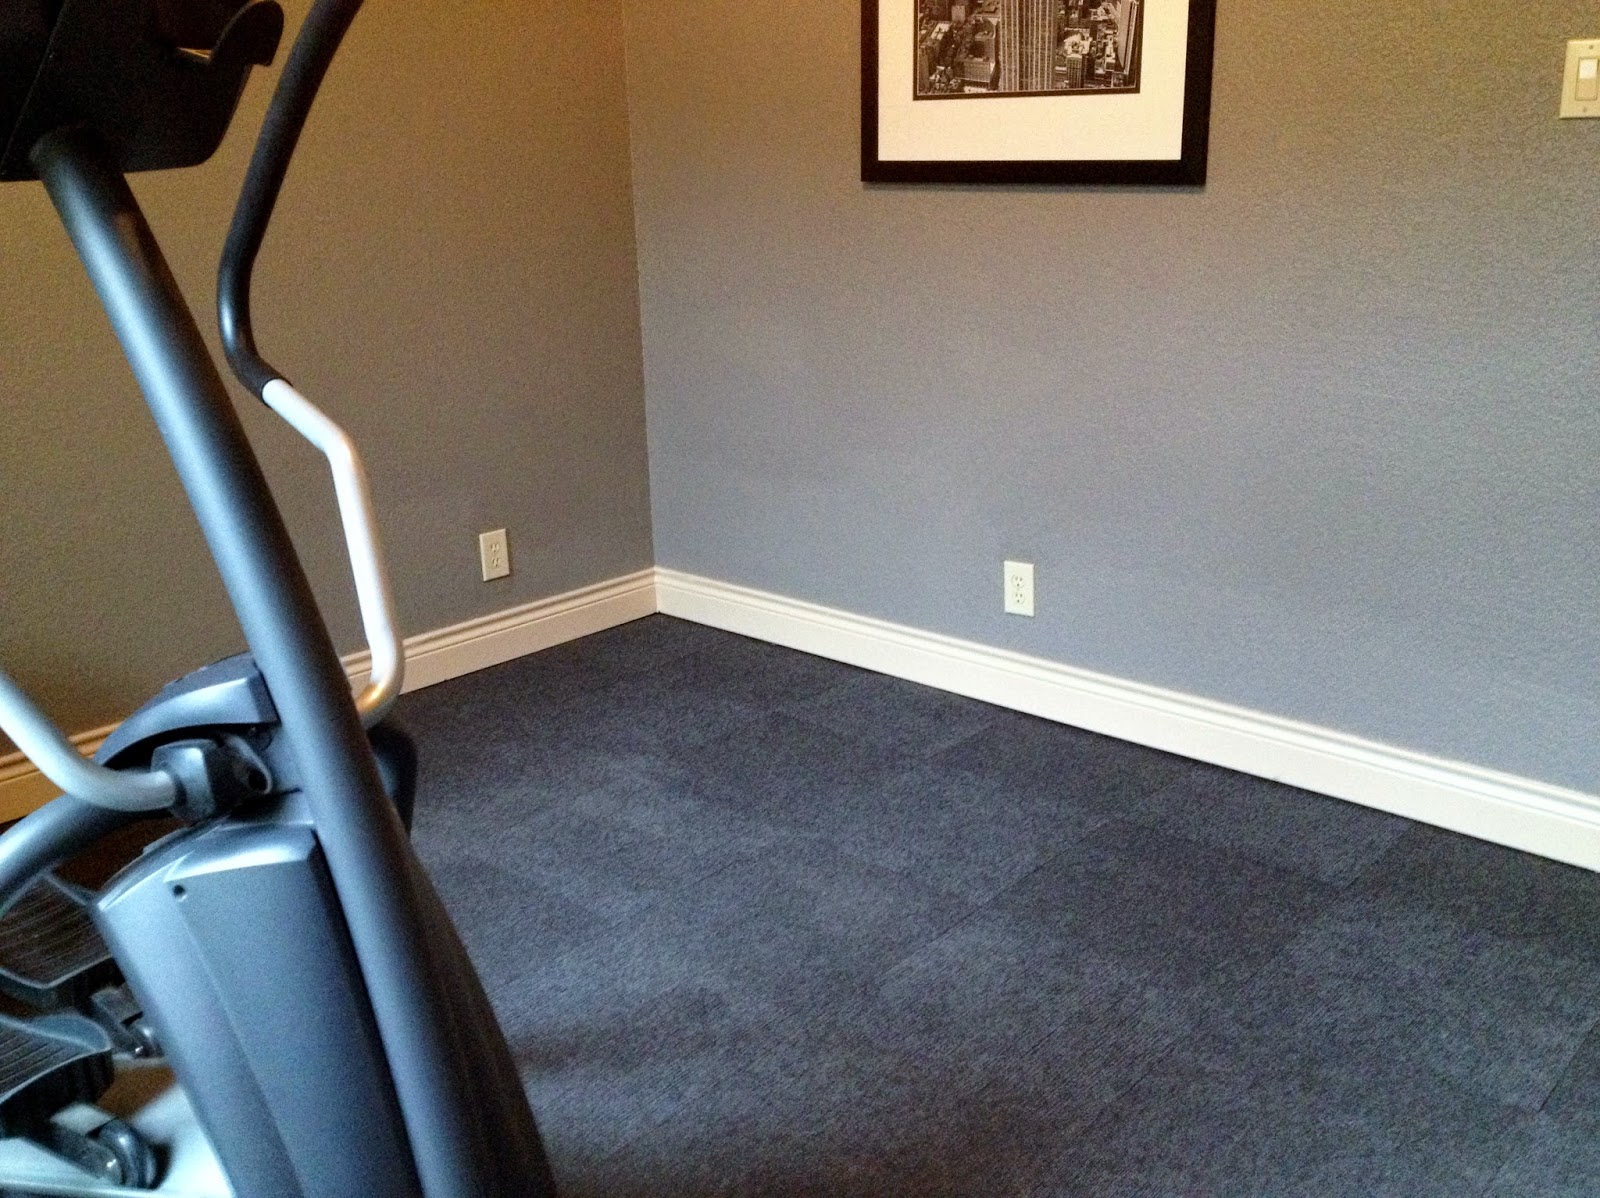 work out room carpet tiles